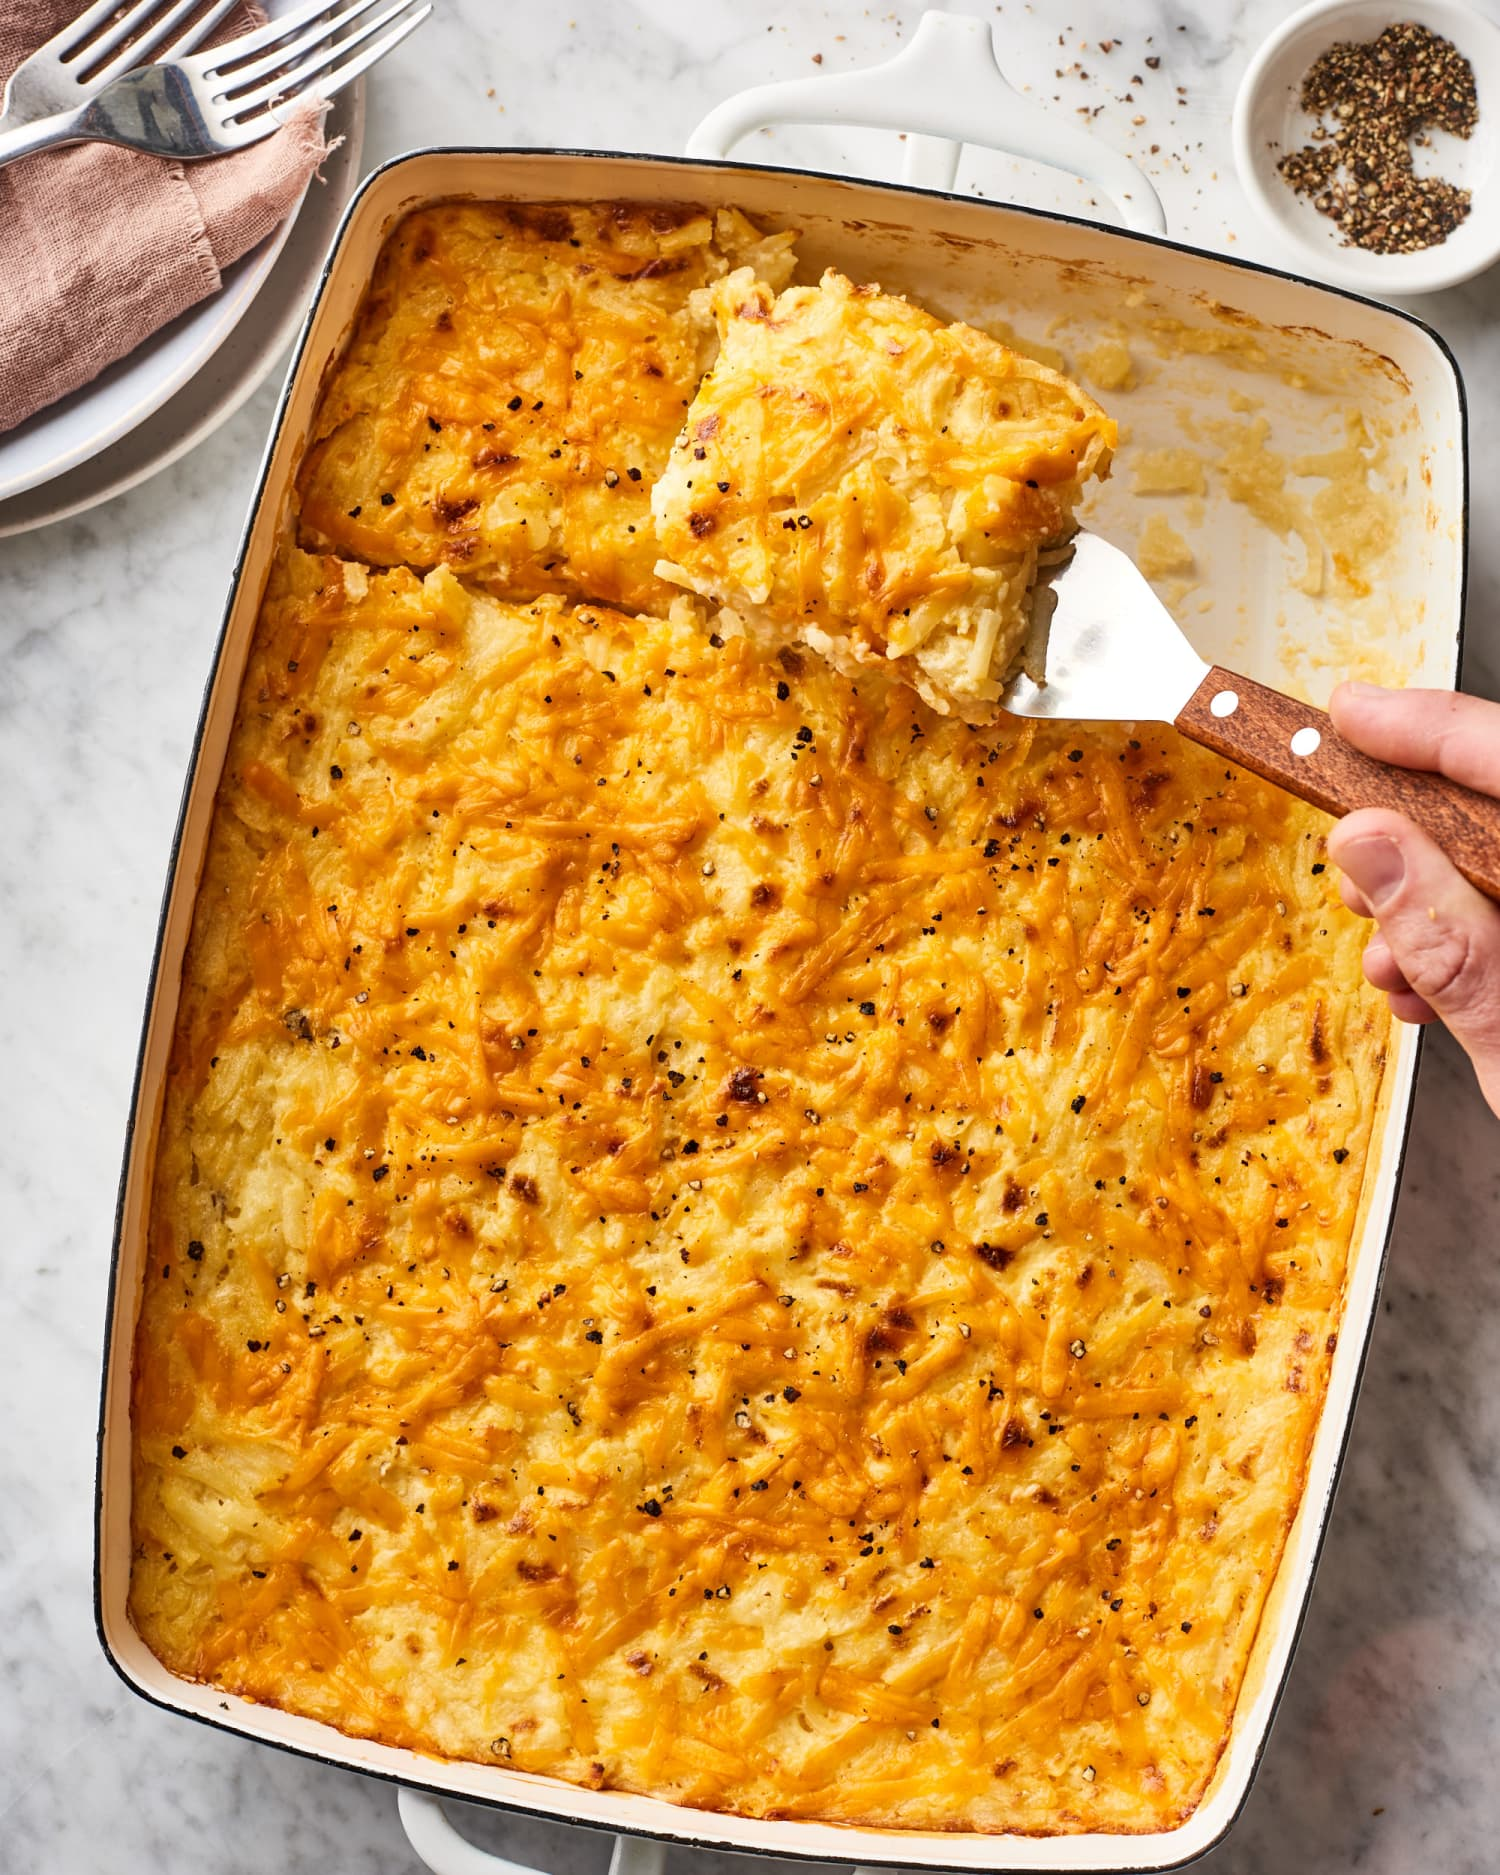 This Hash Brown Casserole Is Better Than the Restaurant Version